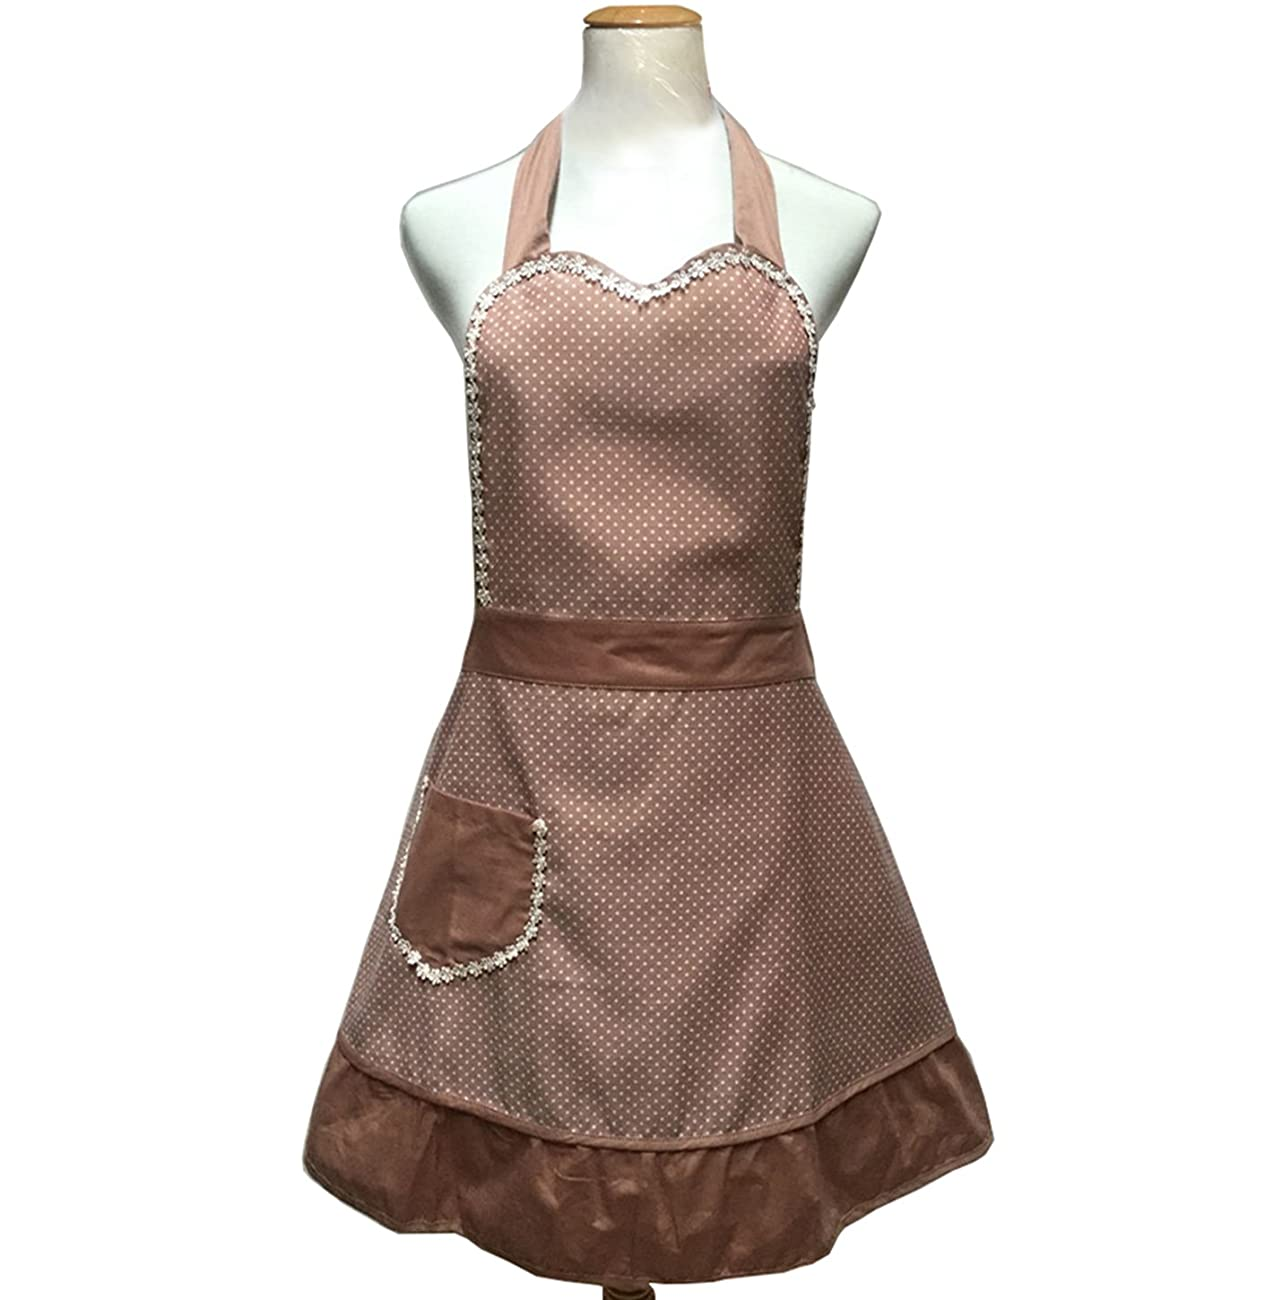 Lovely Sweetheart Retro Kitchen Aprons Woman Girl Cotton Cooking Salon Pinafore Vintage Apron Dress with Pocket,Brown 1